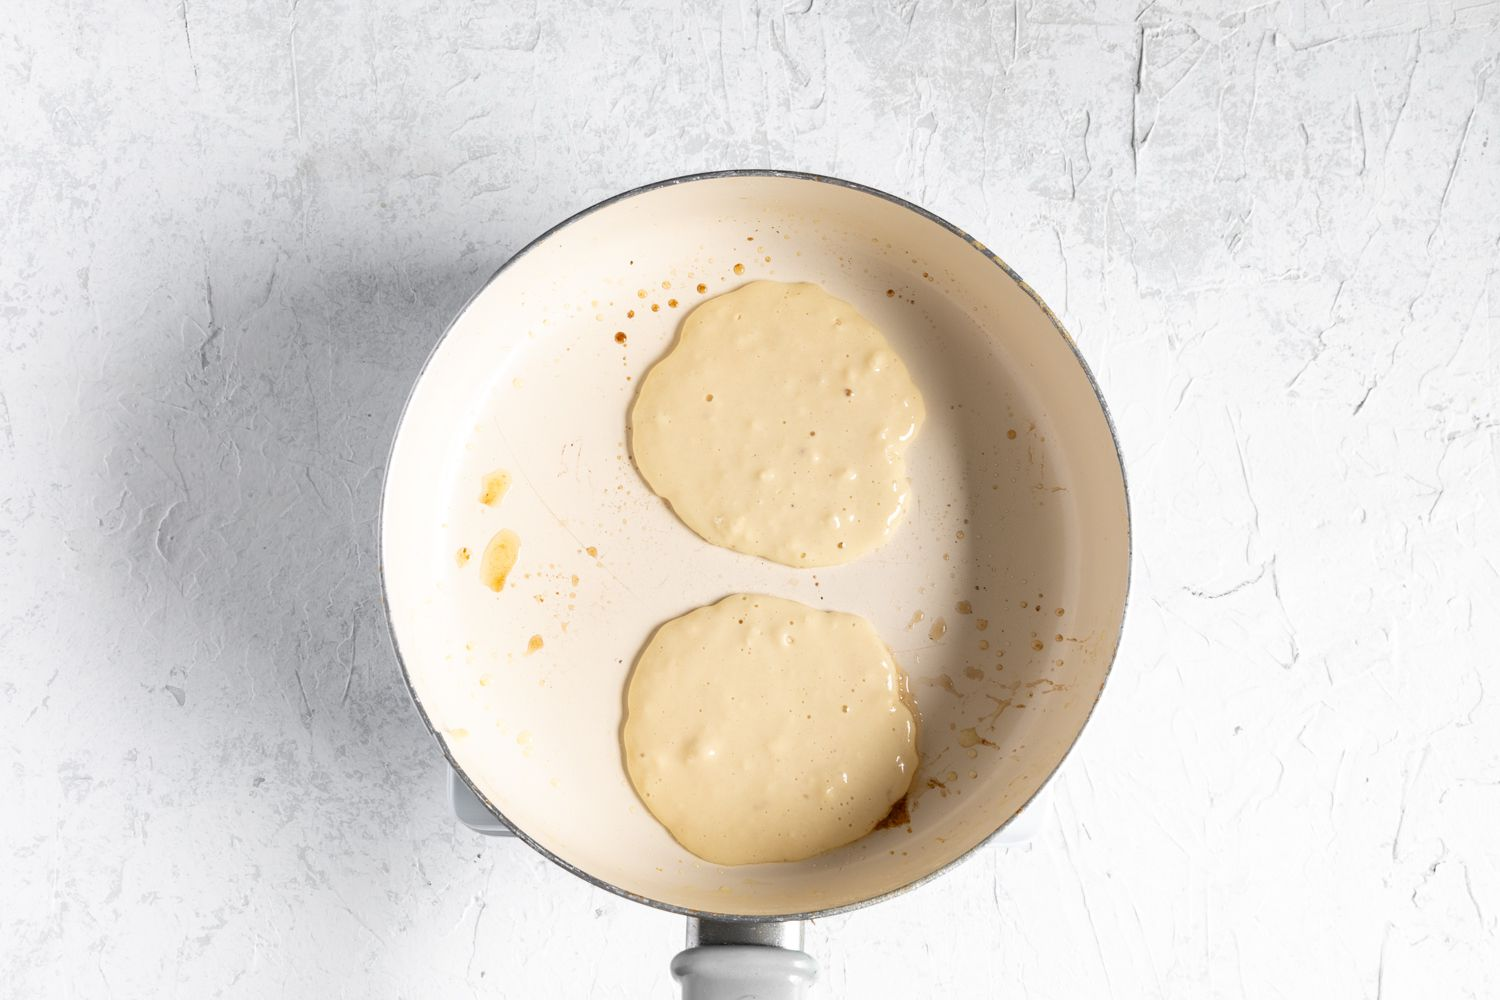 Pancakes cooking in a greased skillet